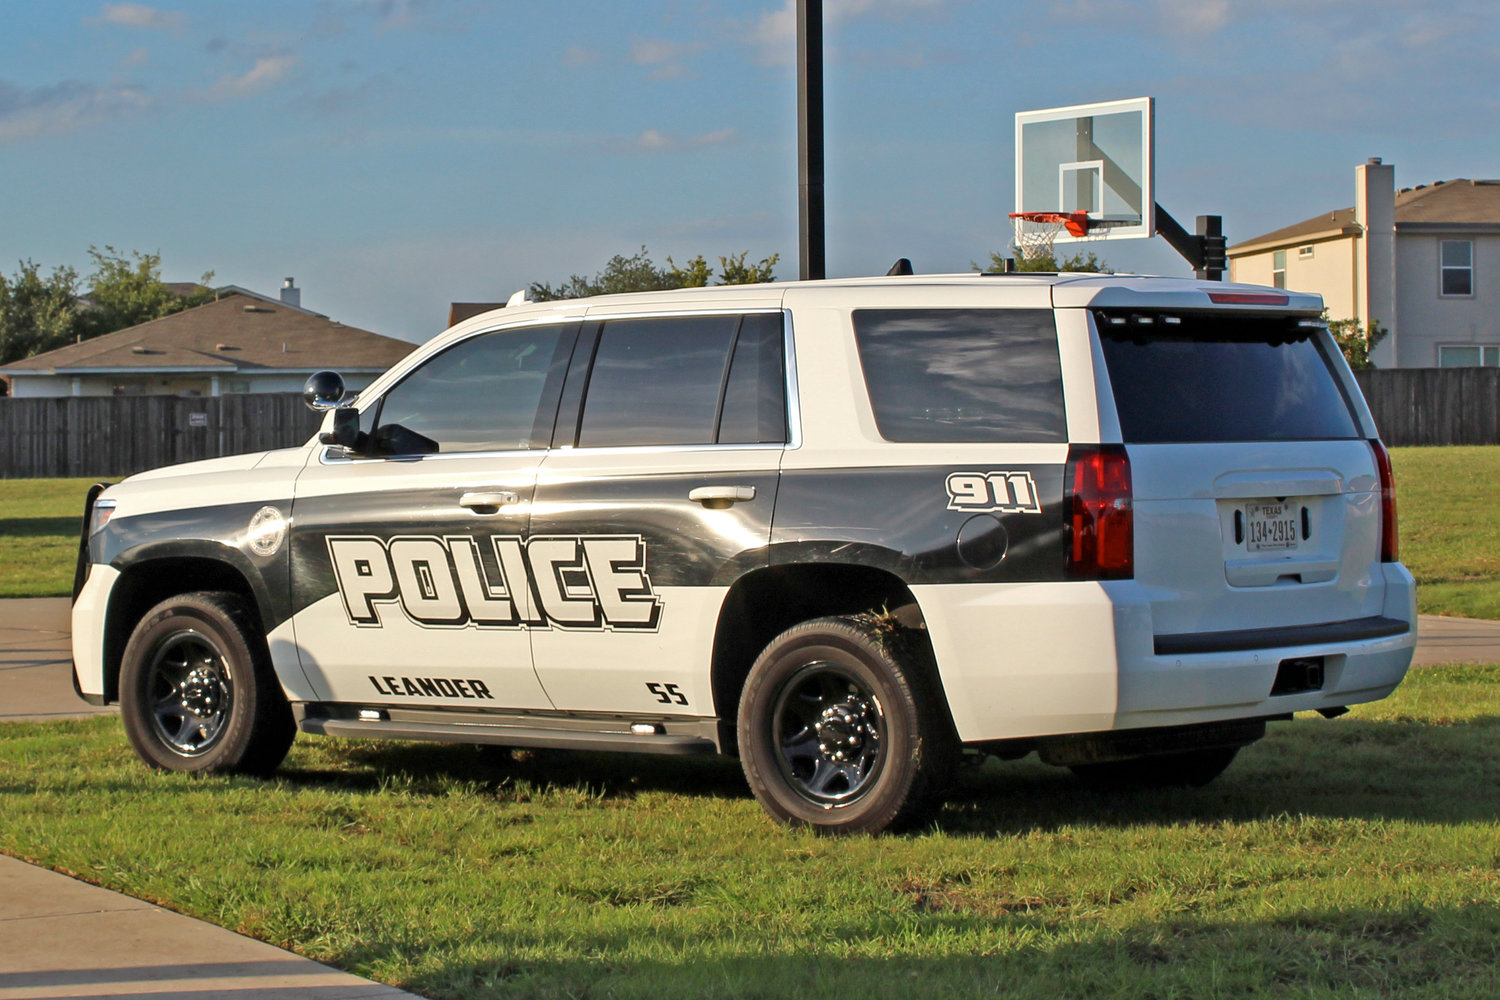 The City of Leander approved the purchase of 22 new vehicles for the city, including seven for the police department. The vehicles are expected to be delivered in 2019.